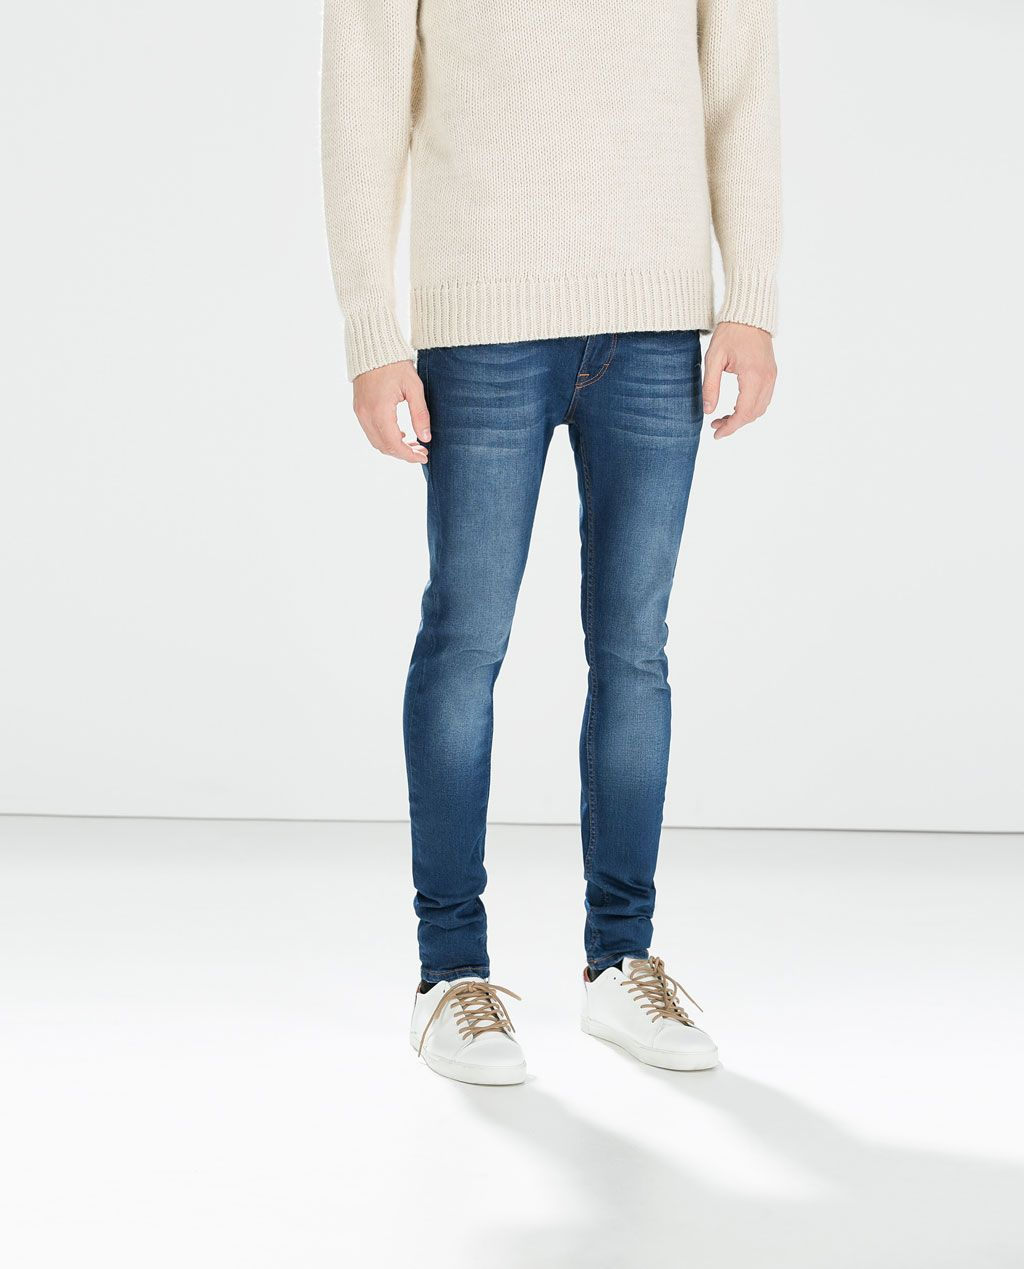 3dc030a9414 Zara Man, Zara United States, Men's Collection, Skinny Jeans, Menswear,  Pants